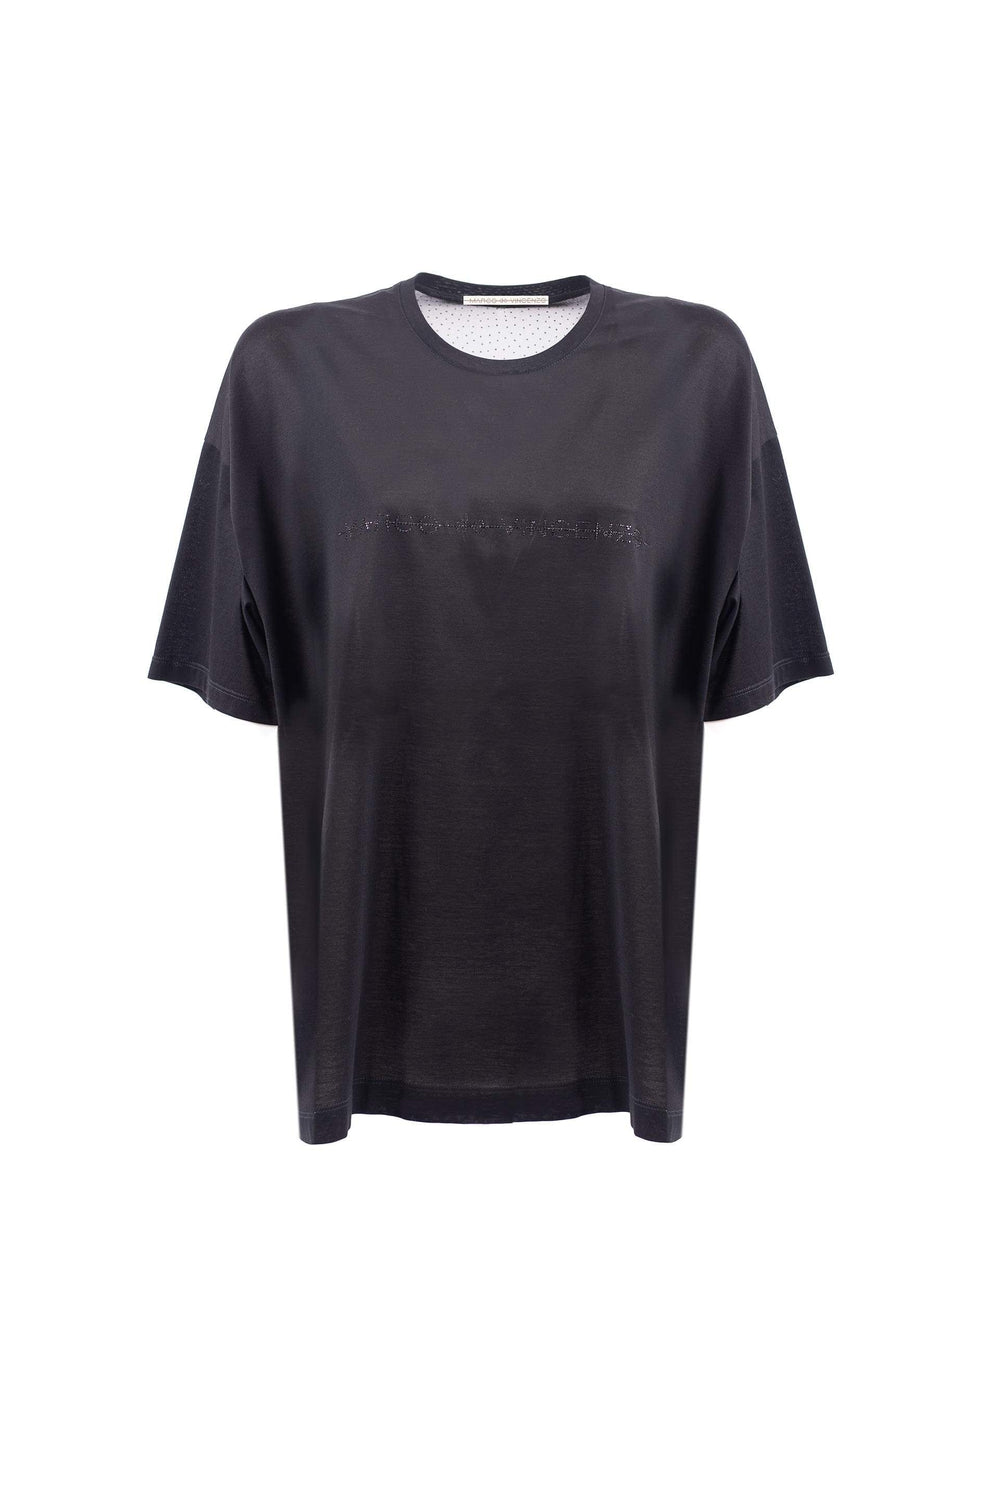 T-shirt over girocollo a maniche corte in jersey con logo frontale in strass.